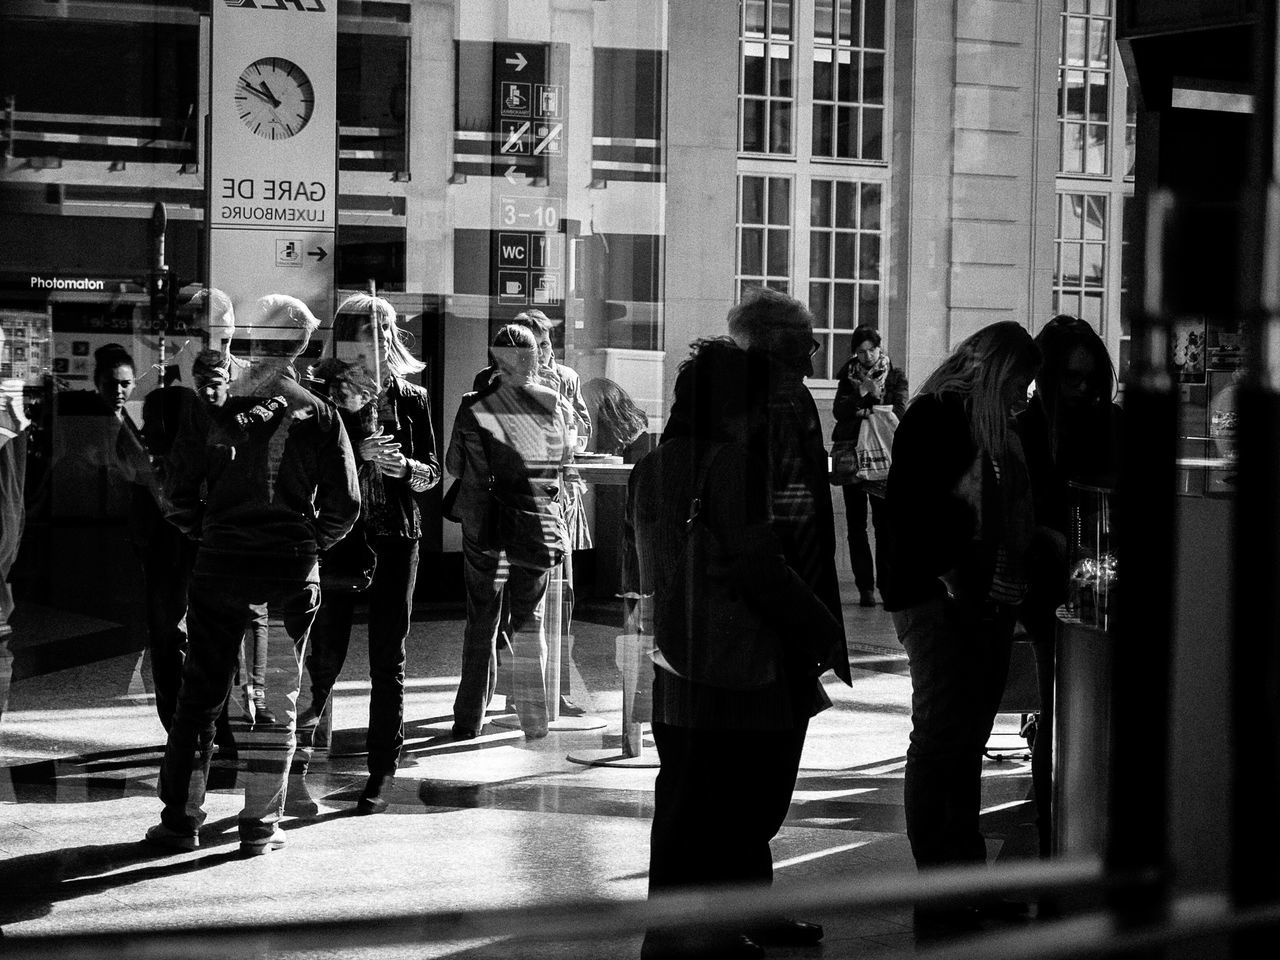 real people, building exterior, architecture, built structure, full length, street, walking, city, large group of people, men, women, city life, outdoors, day, lifestyles, protestor, crowd, musician, adult, people